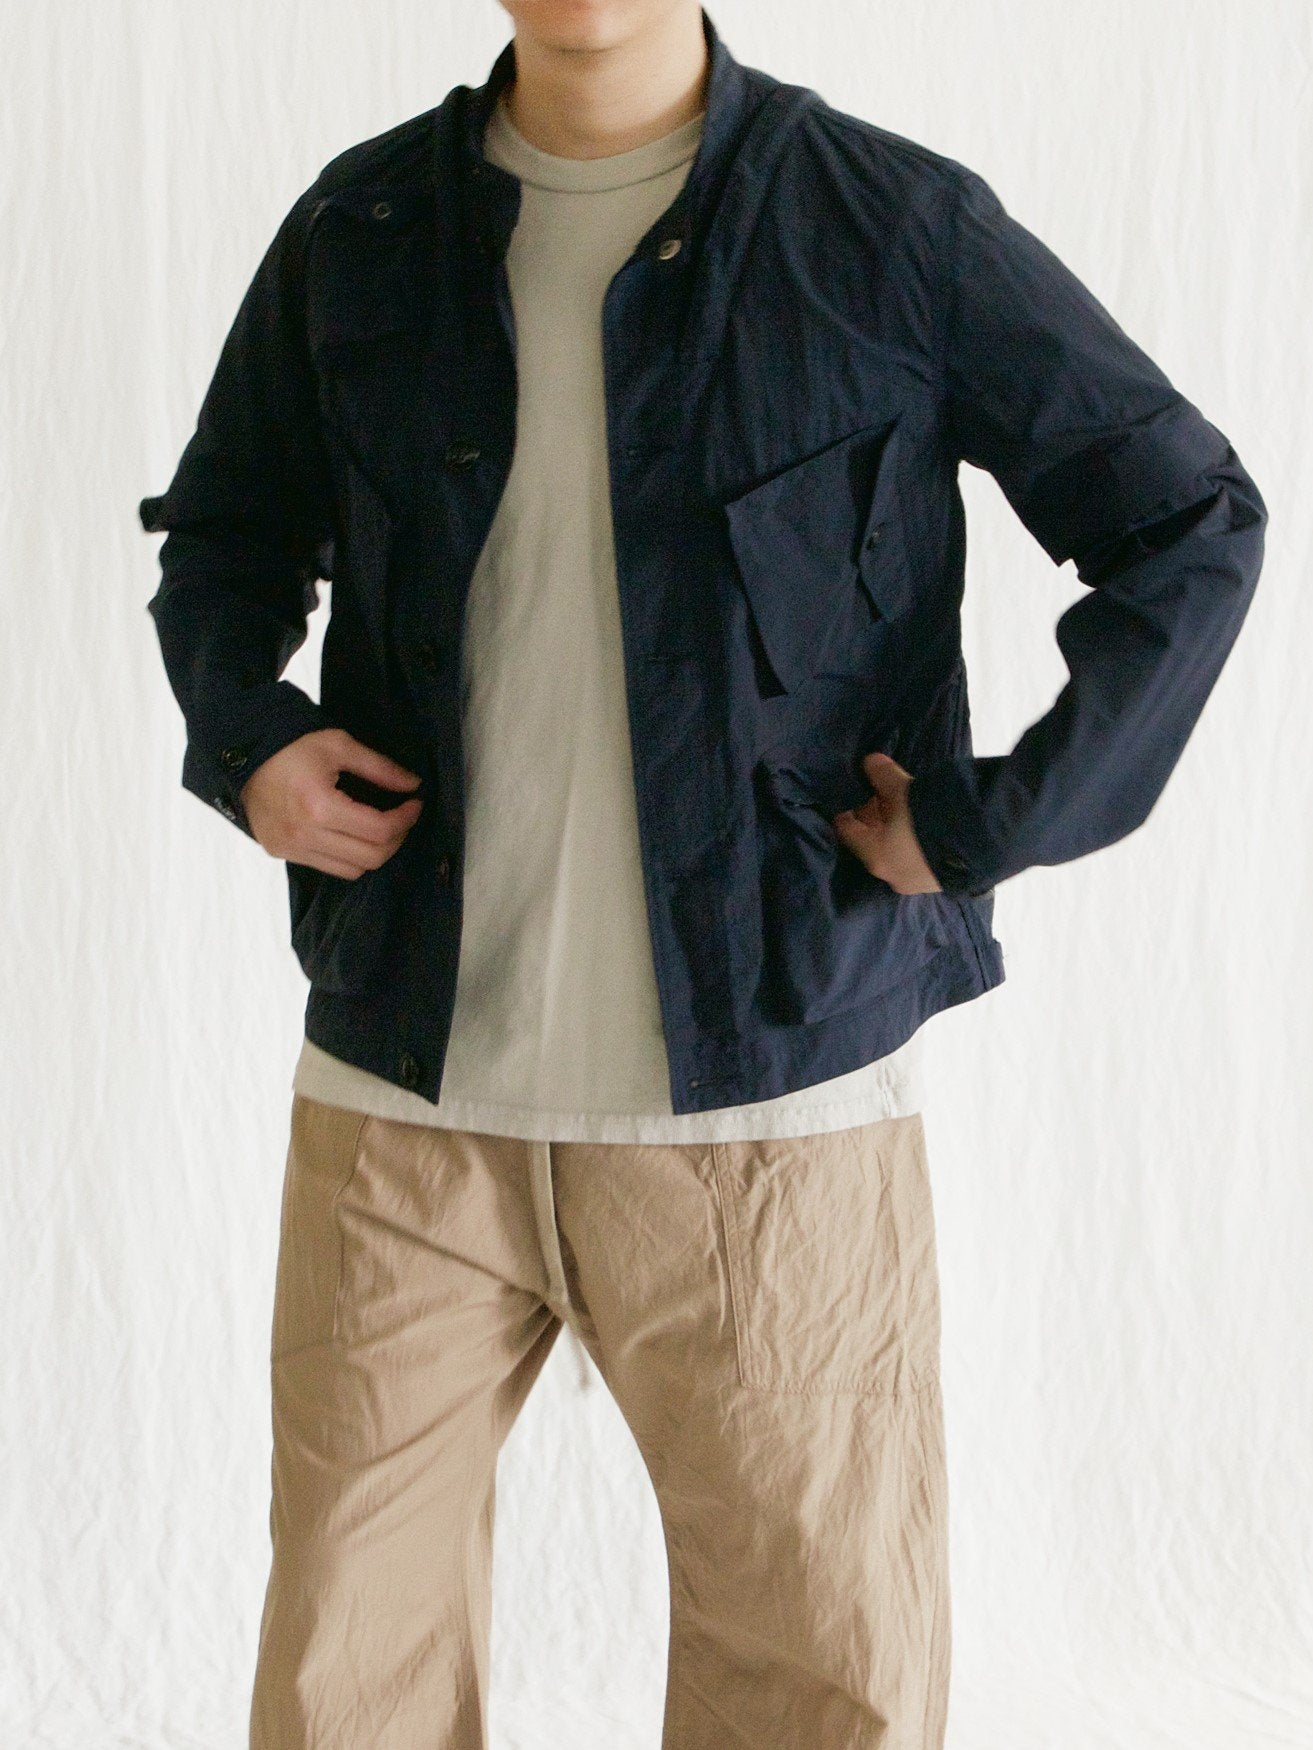 Namu Shop - Eastlogue C-1 Jumper - Navy Ripstop